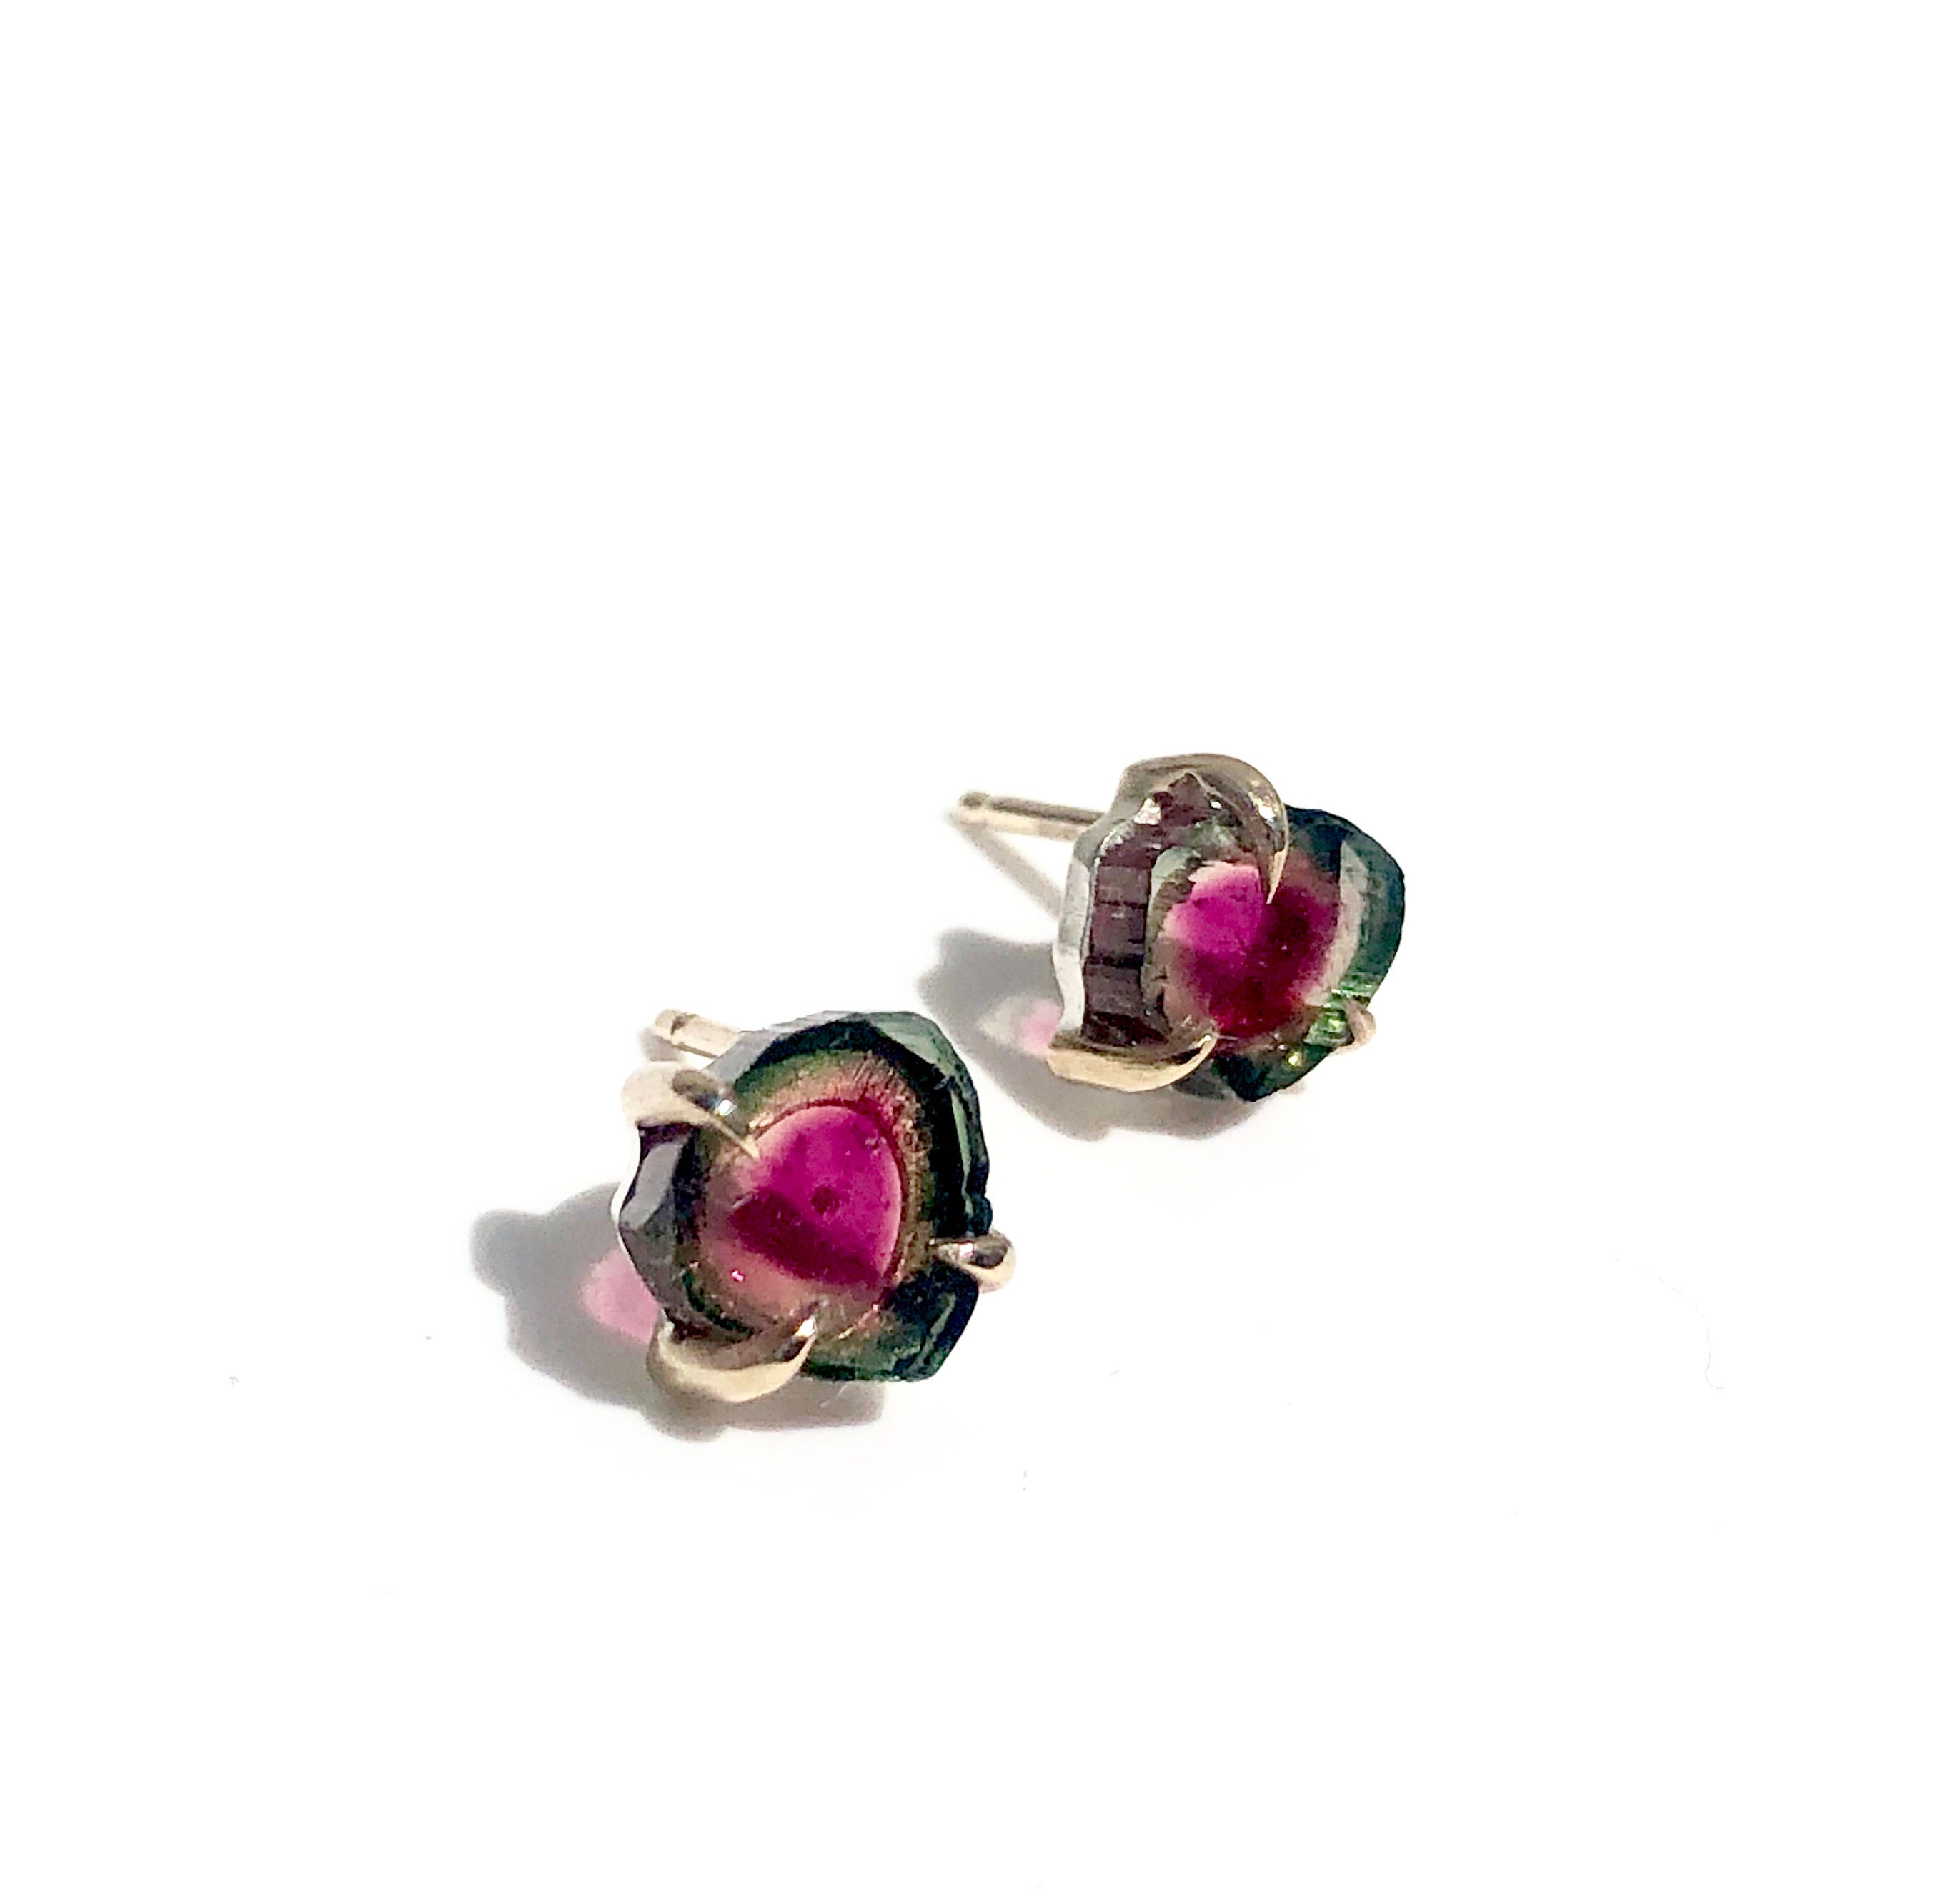 Watermelon Tourmaline stud earrings